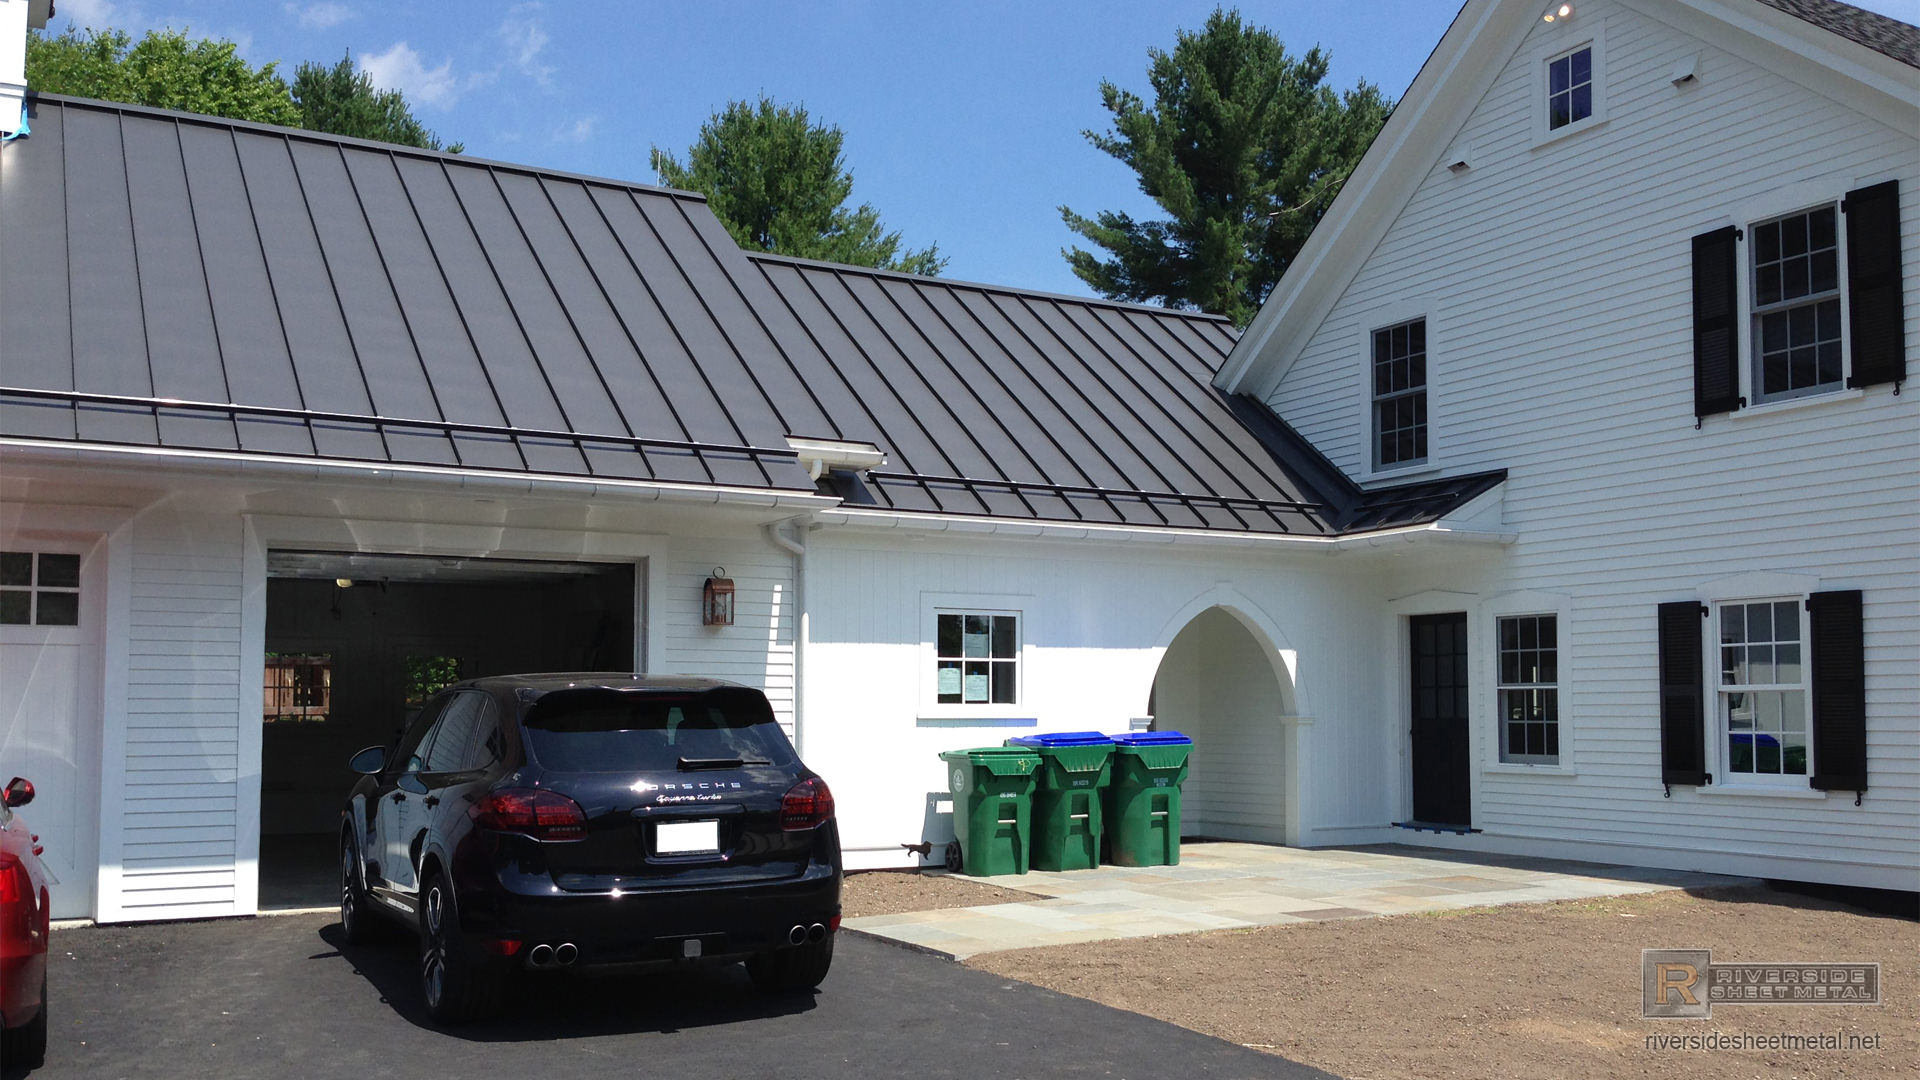 Kalzip Standing Seam Roof System